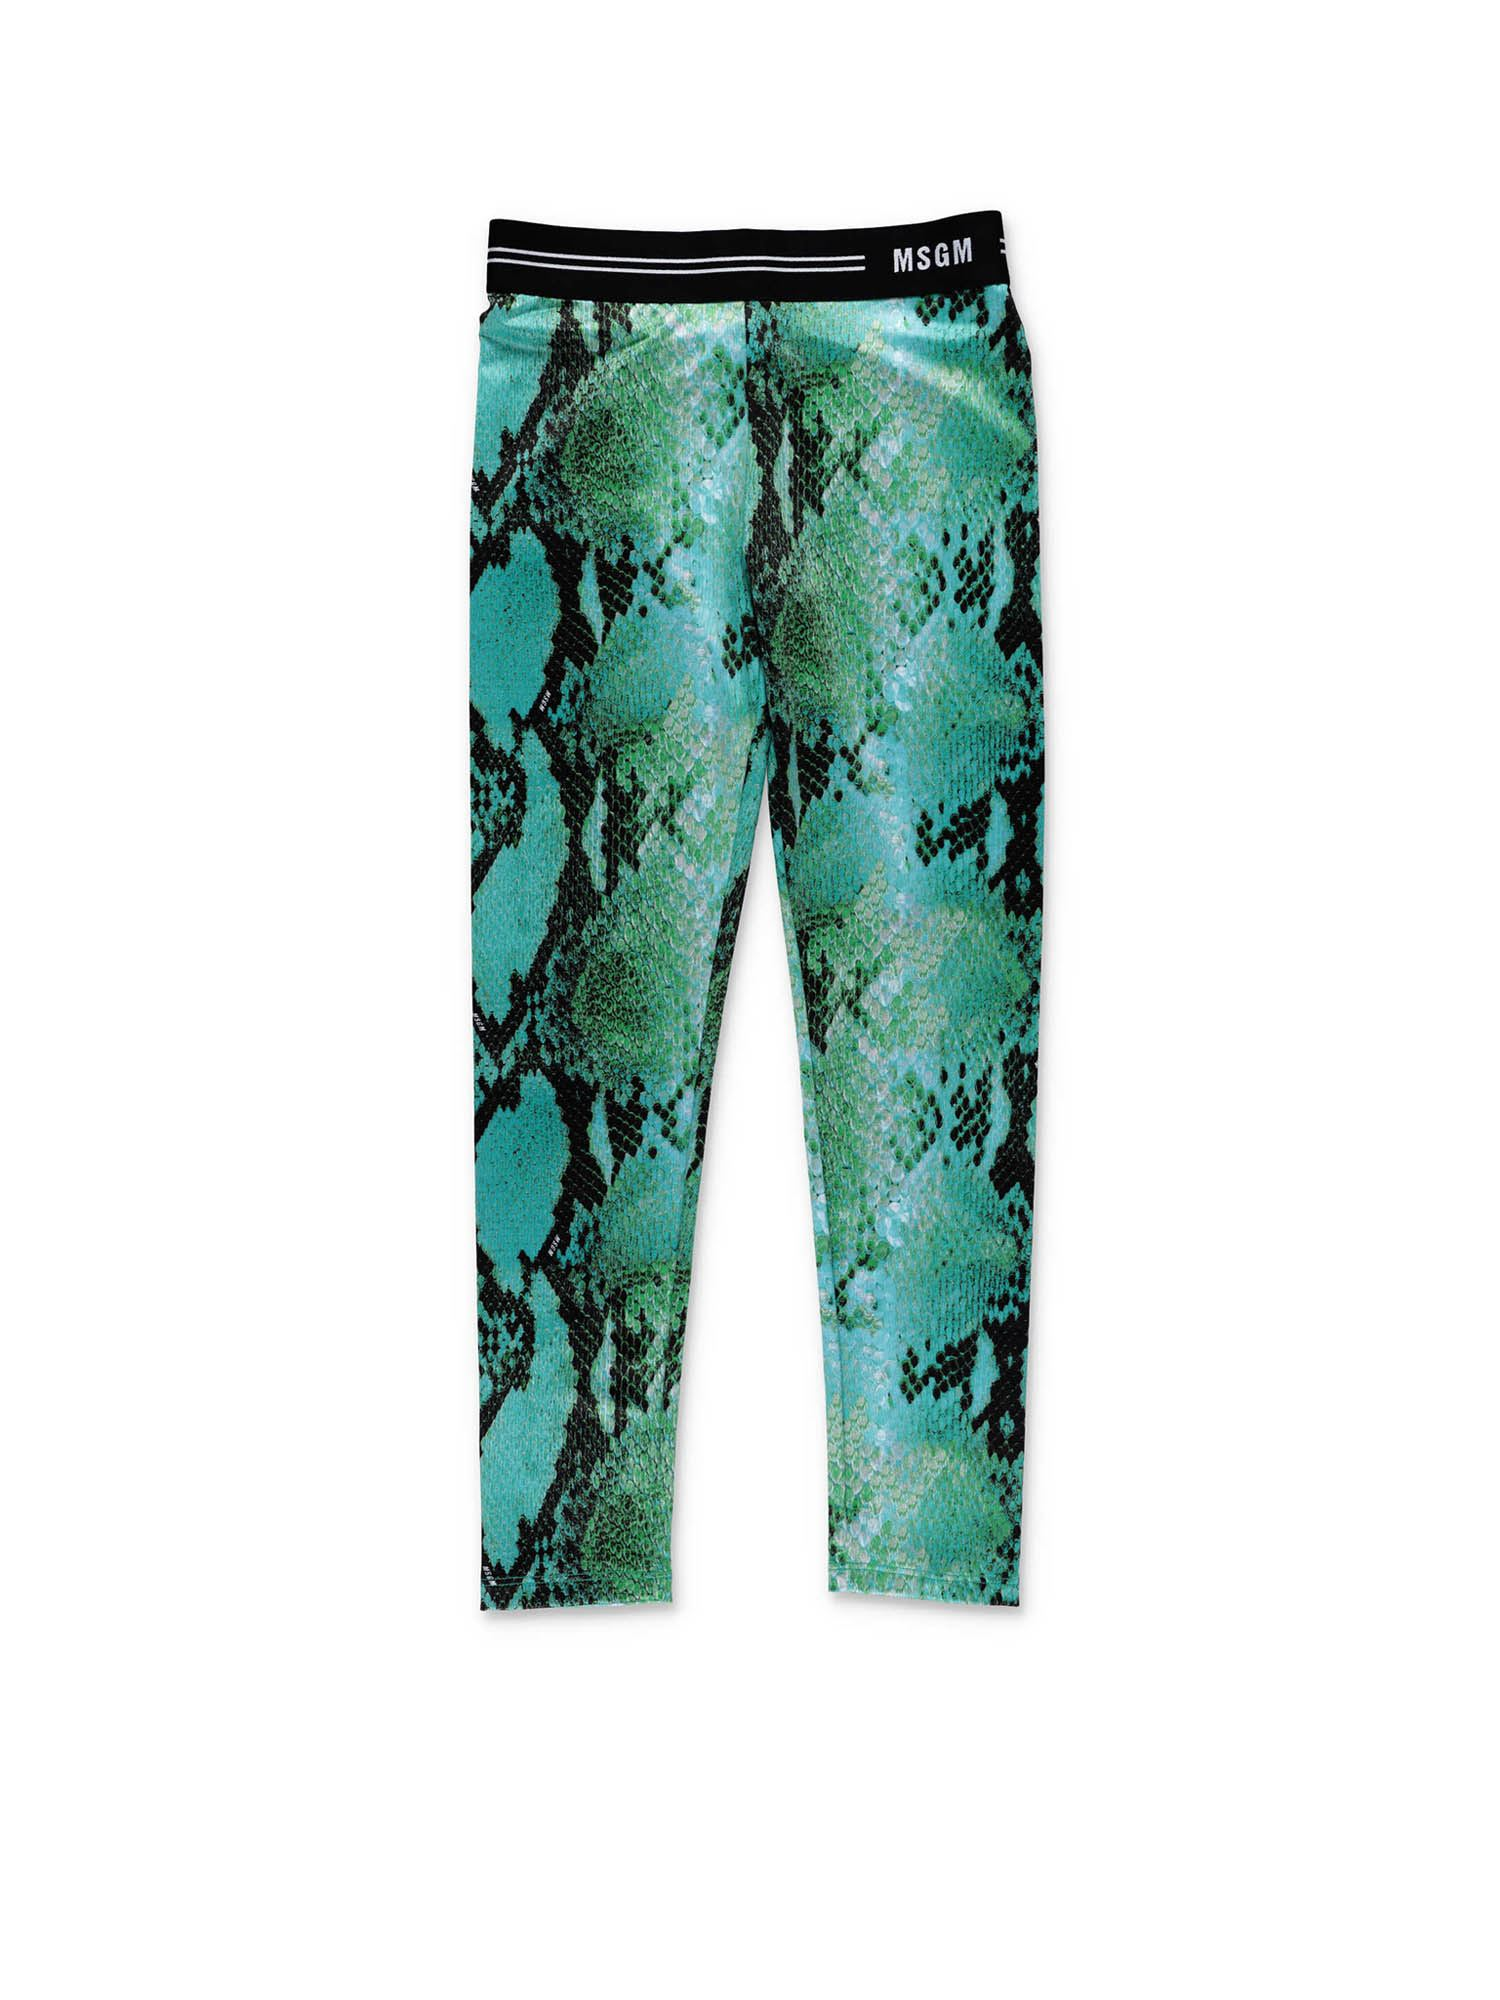 Msgm GREEN SNAKE LEGGINGS